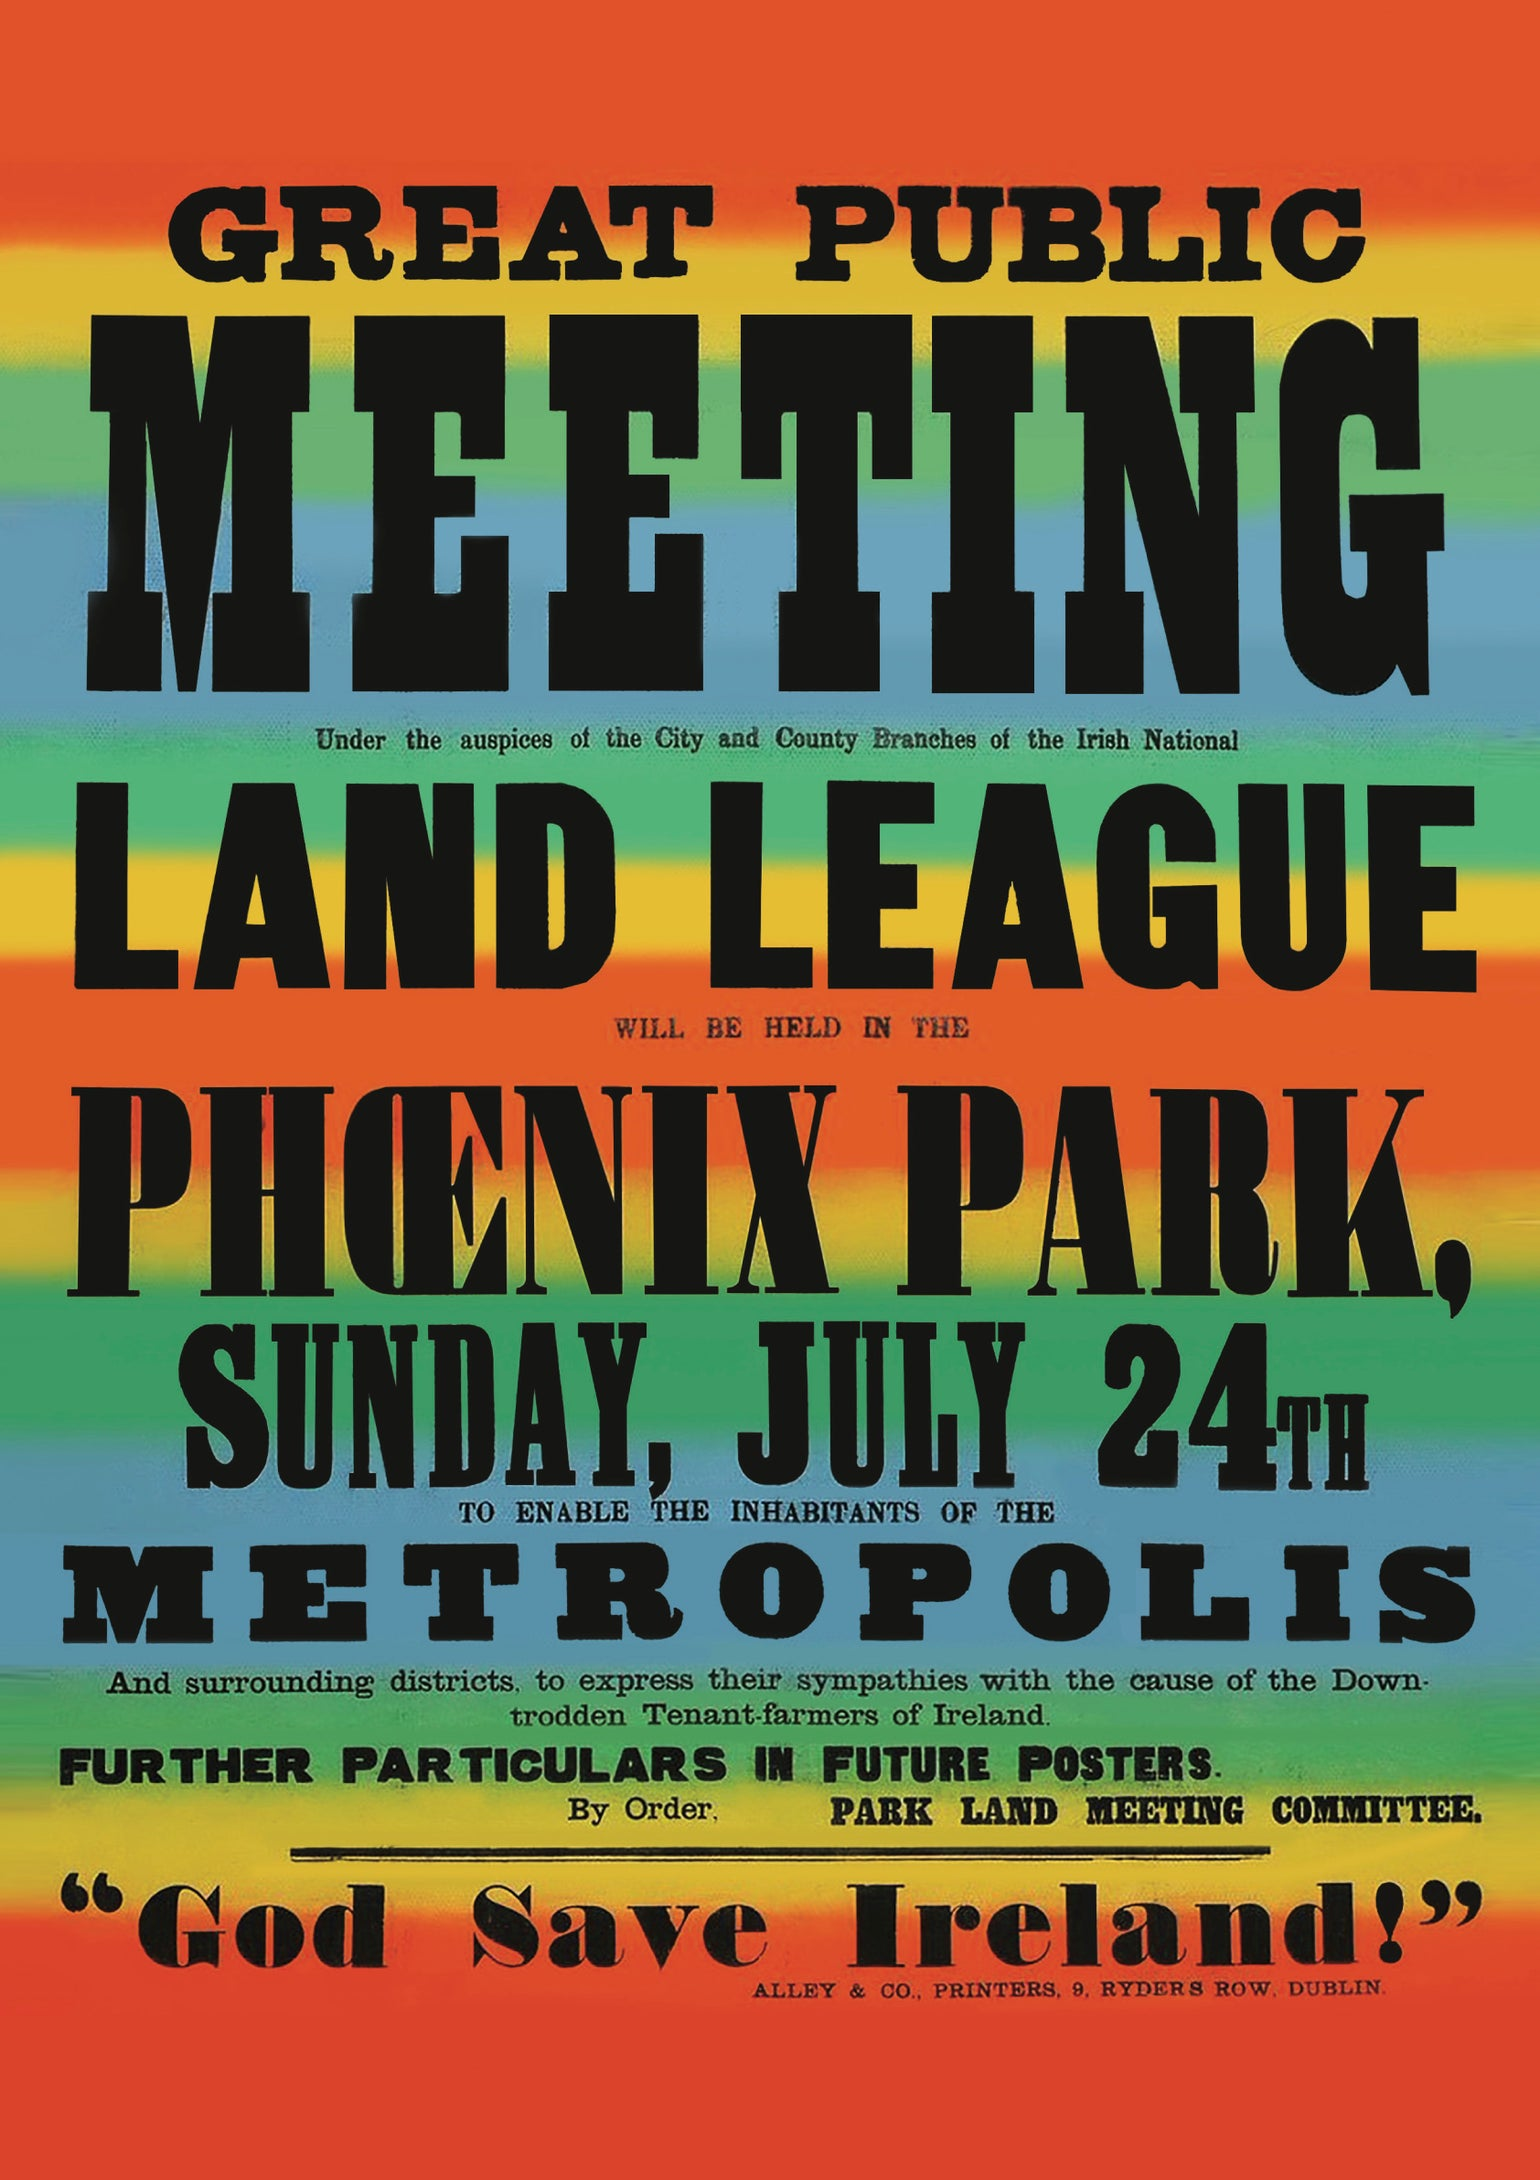 Image of 1881 Land League Poster